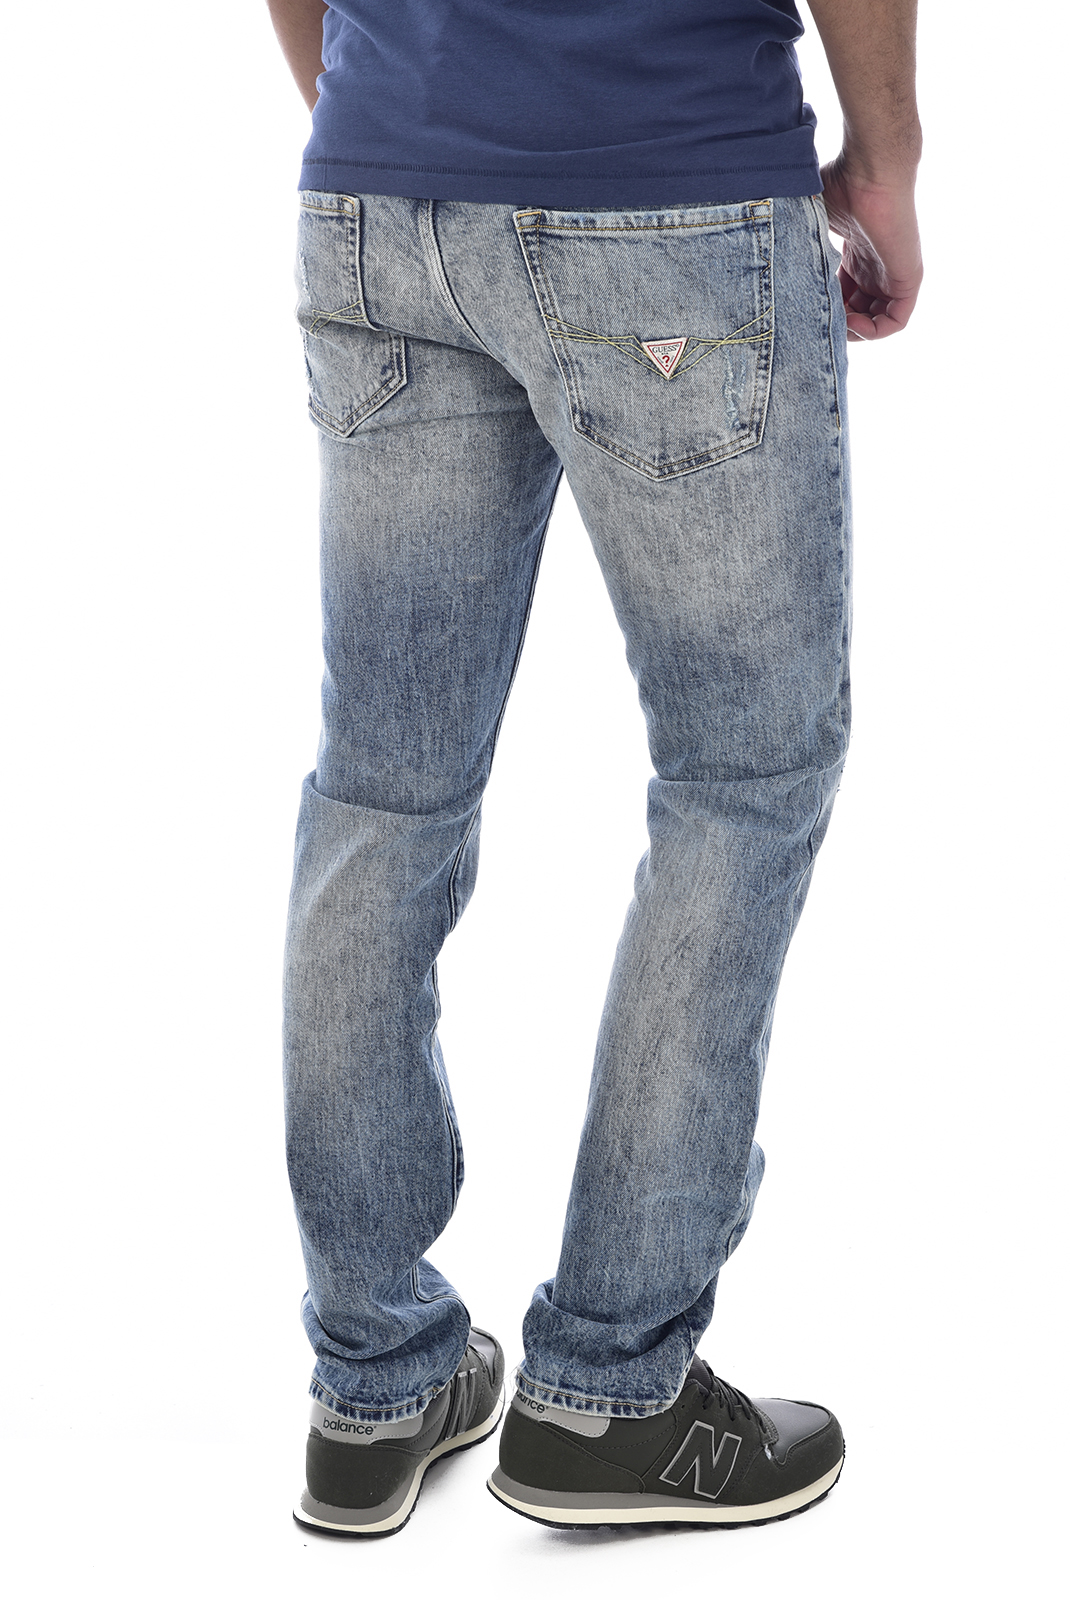 slim / skinny  Guess jeans M92AN2 D32S1 angels MDFR